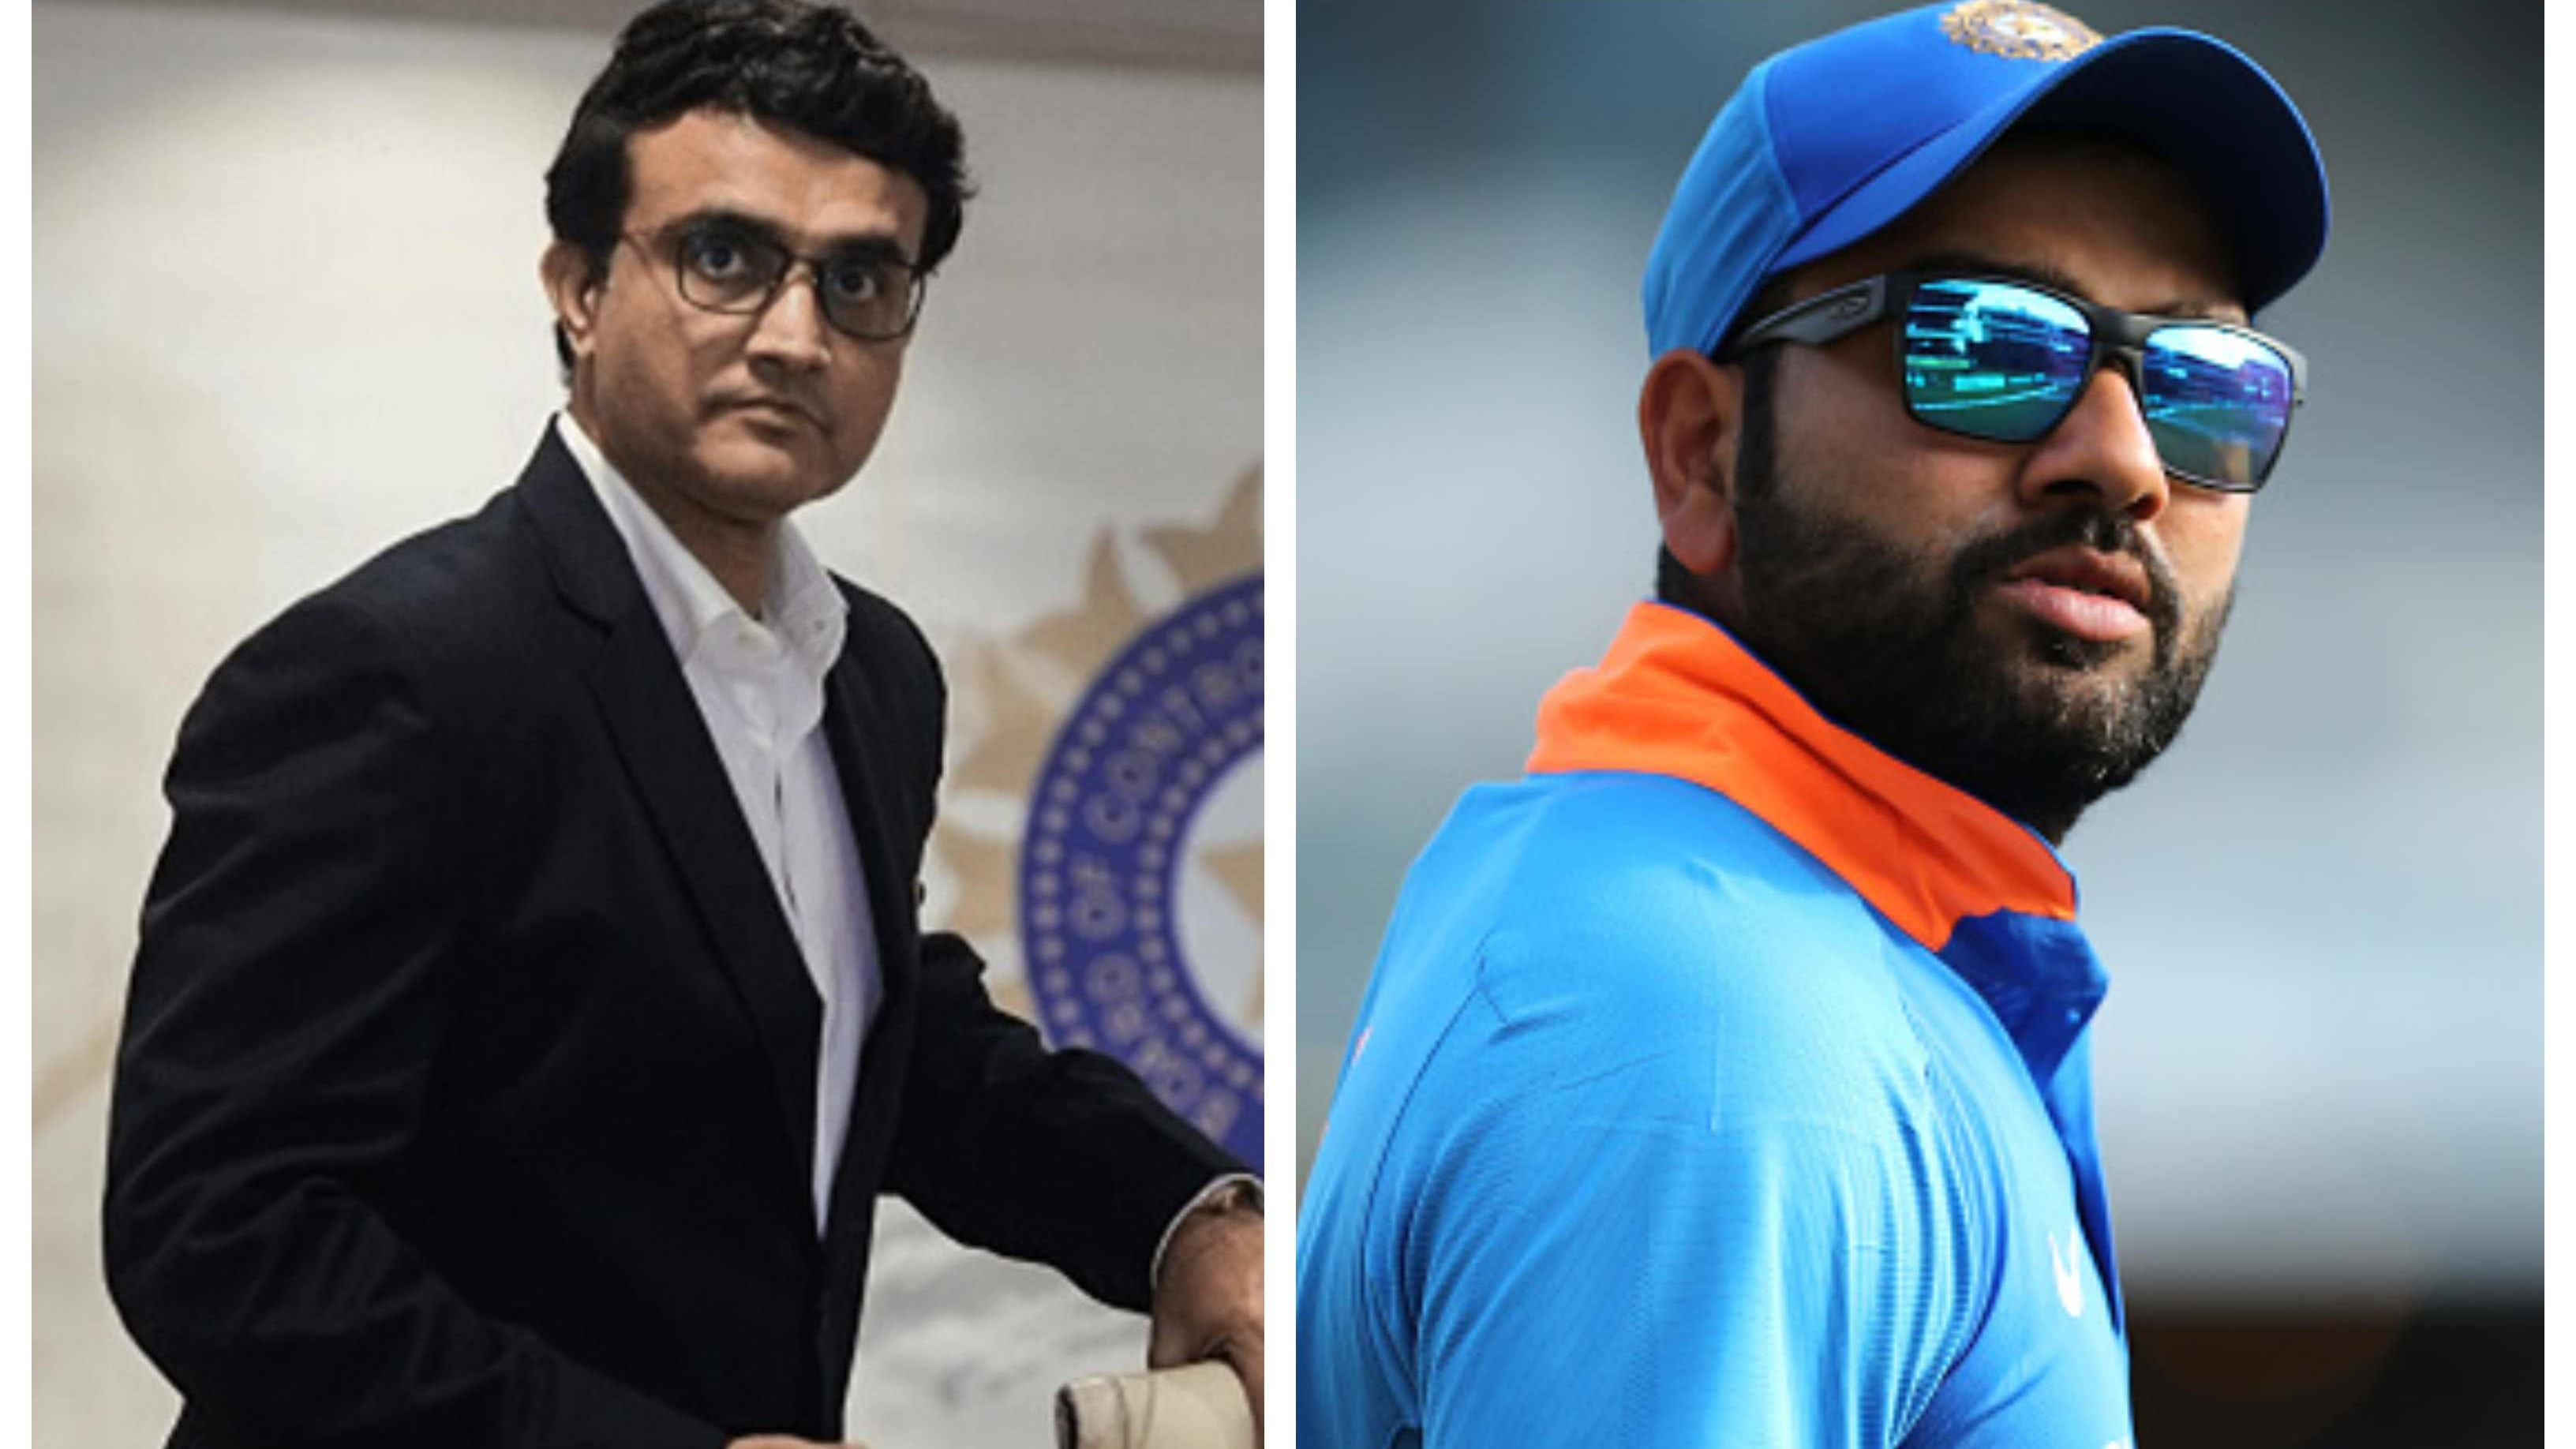 AUS v IND 2020-21: Ganguly clears air on Rohit's chances of making it to the Indian squad for Australia tour